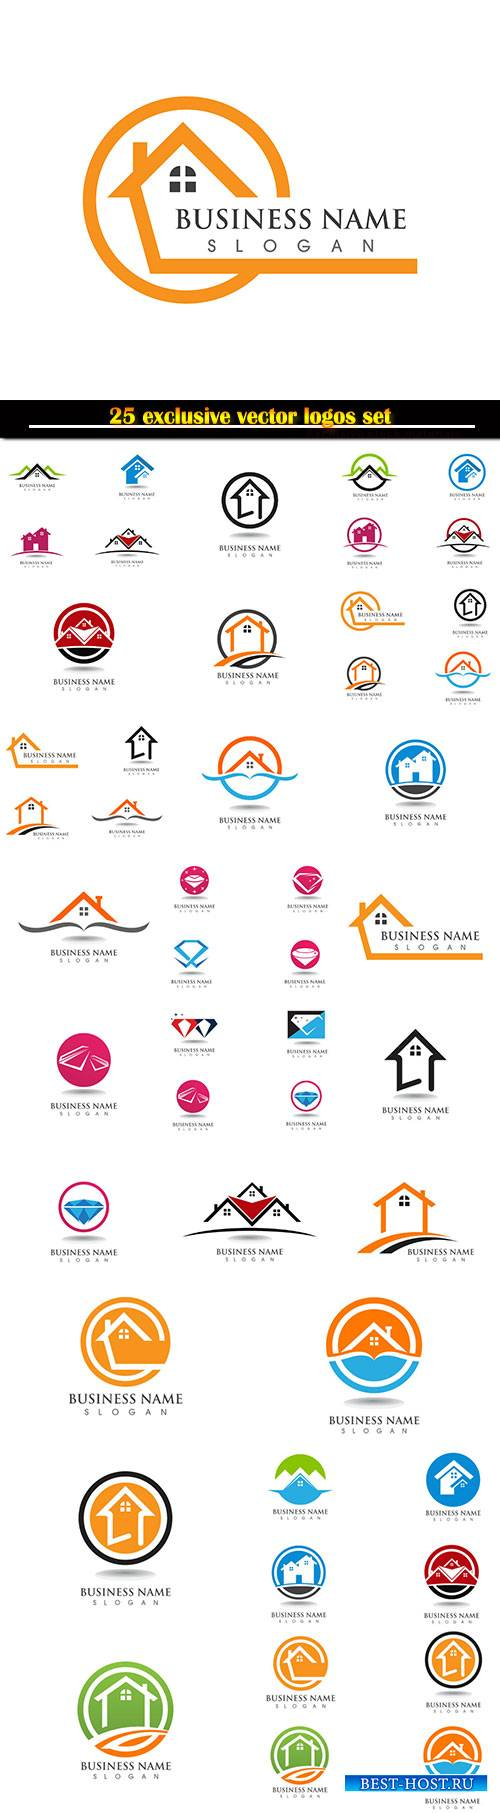 Logo business vector illustration template # 119